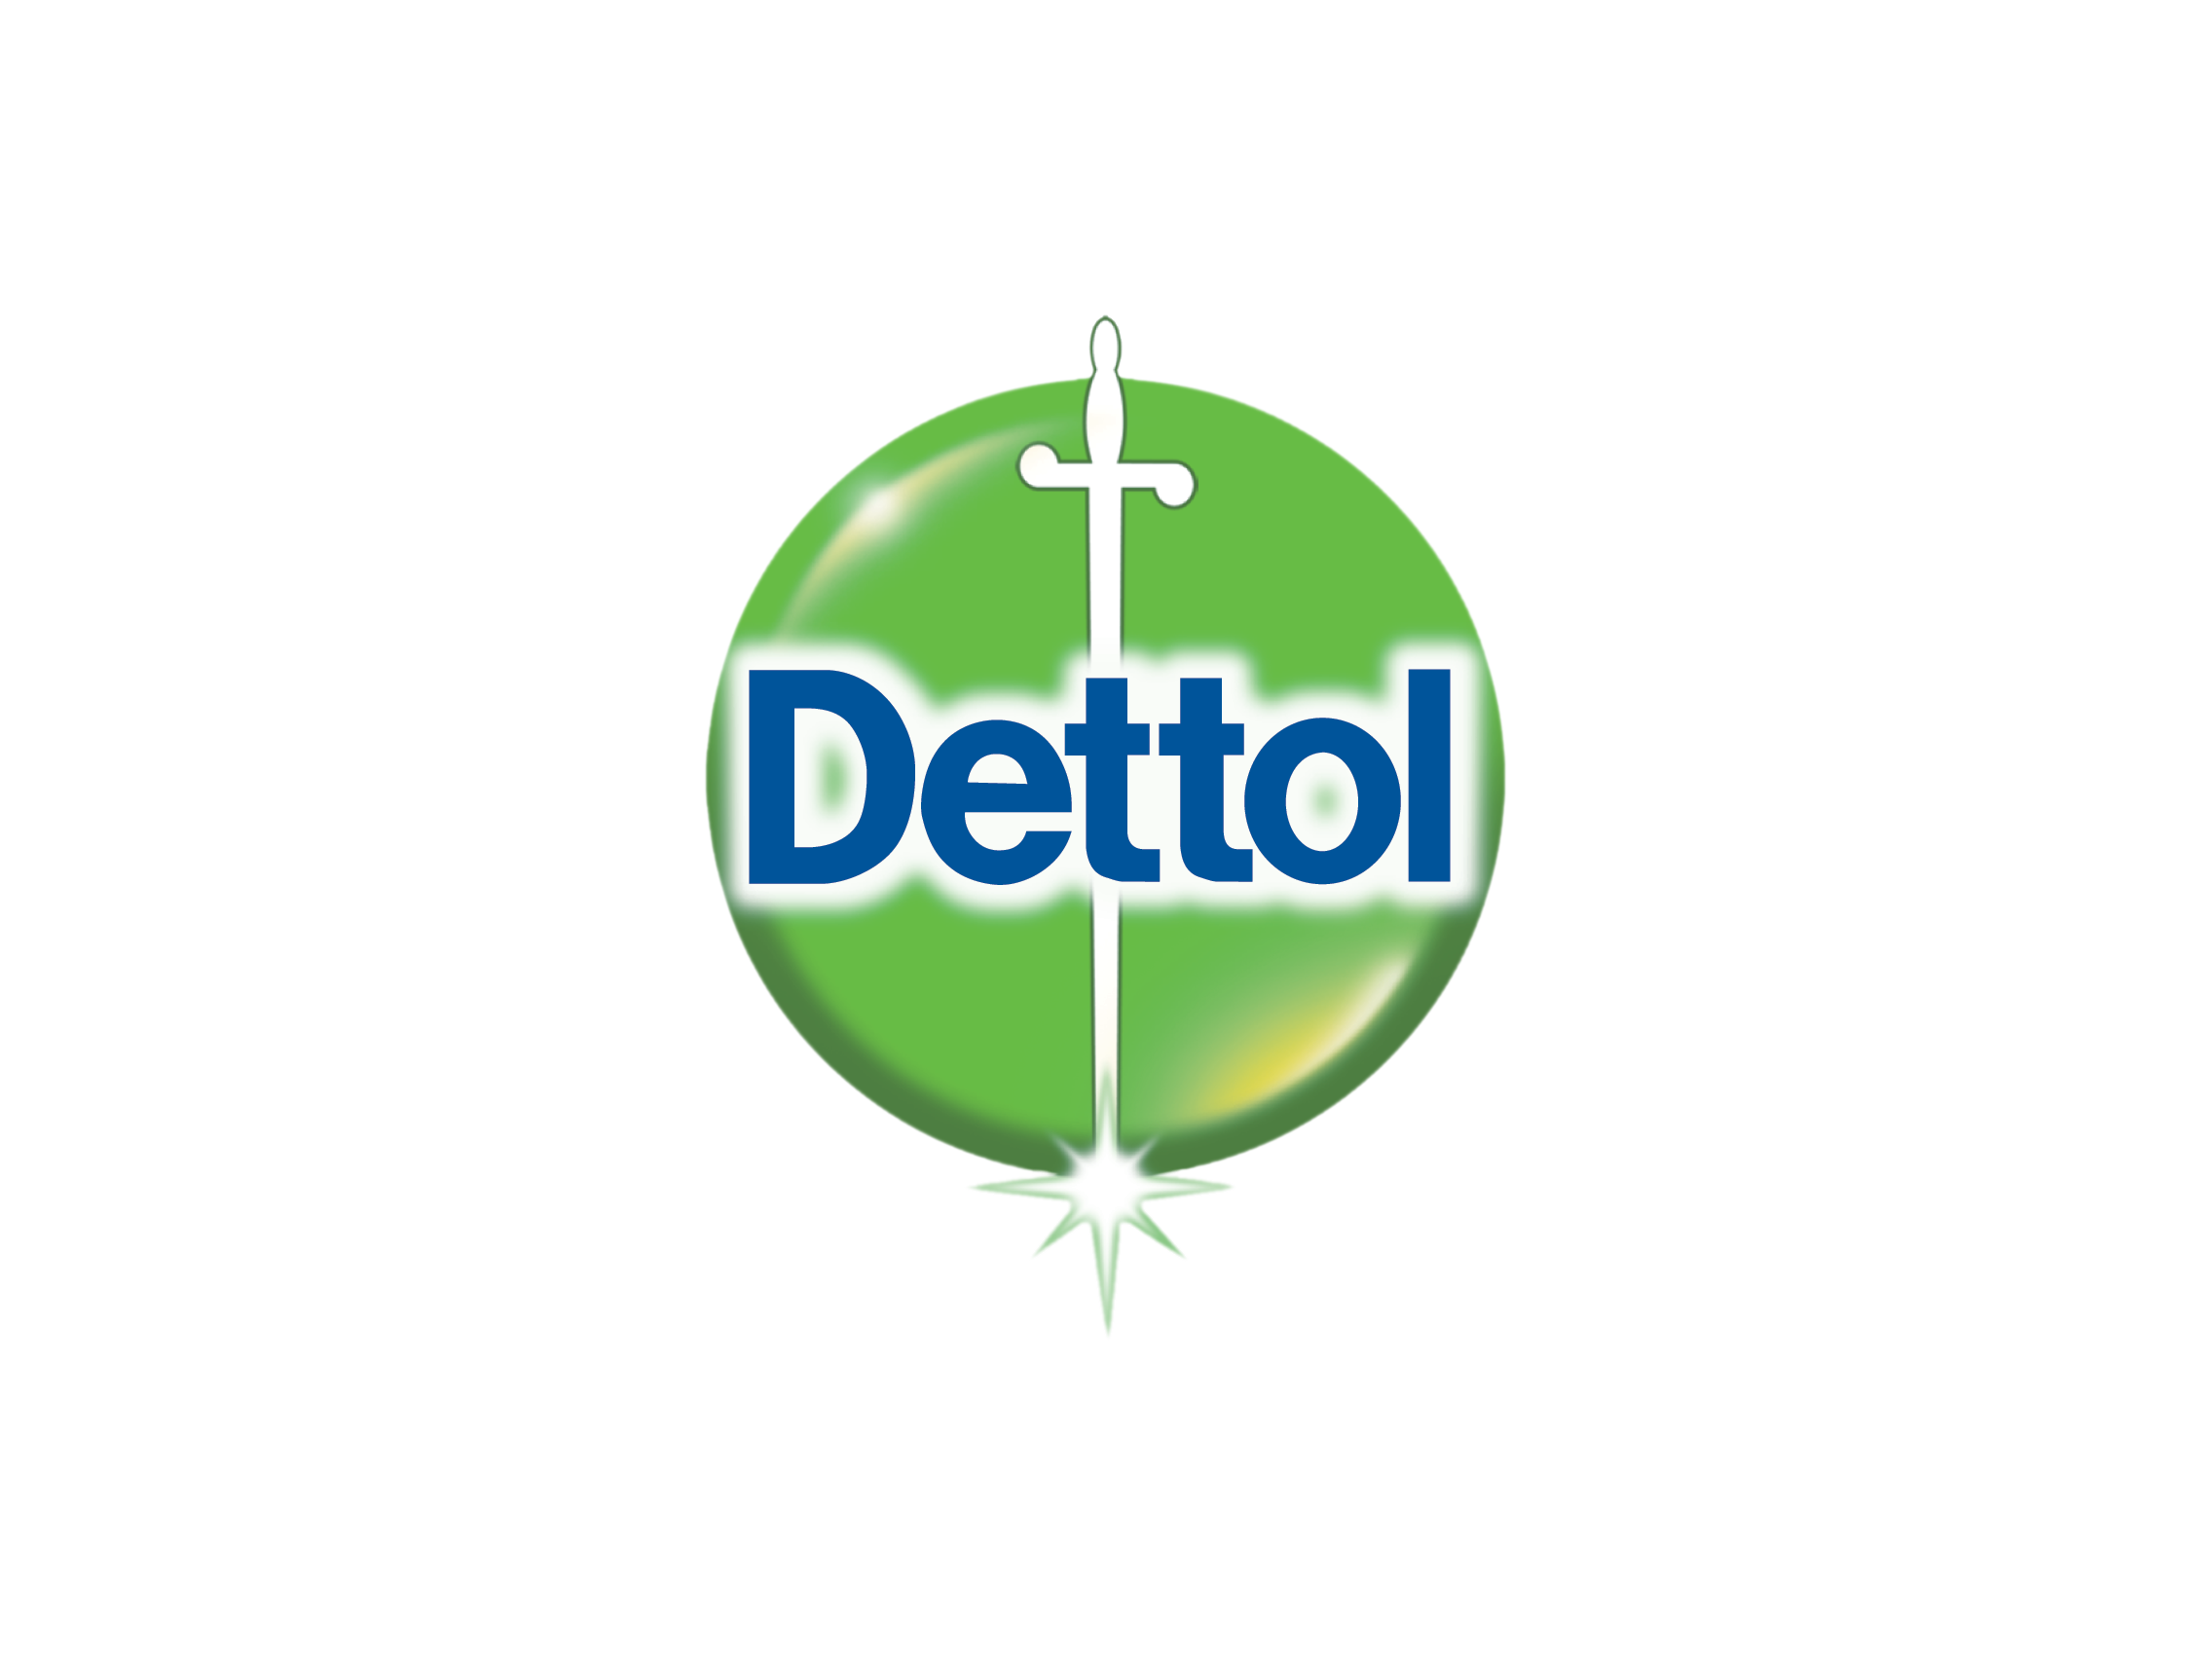 DETTOL products